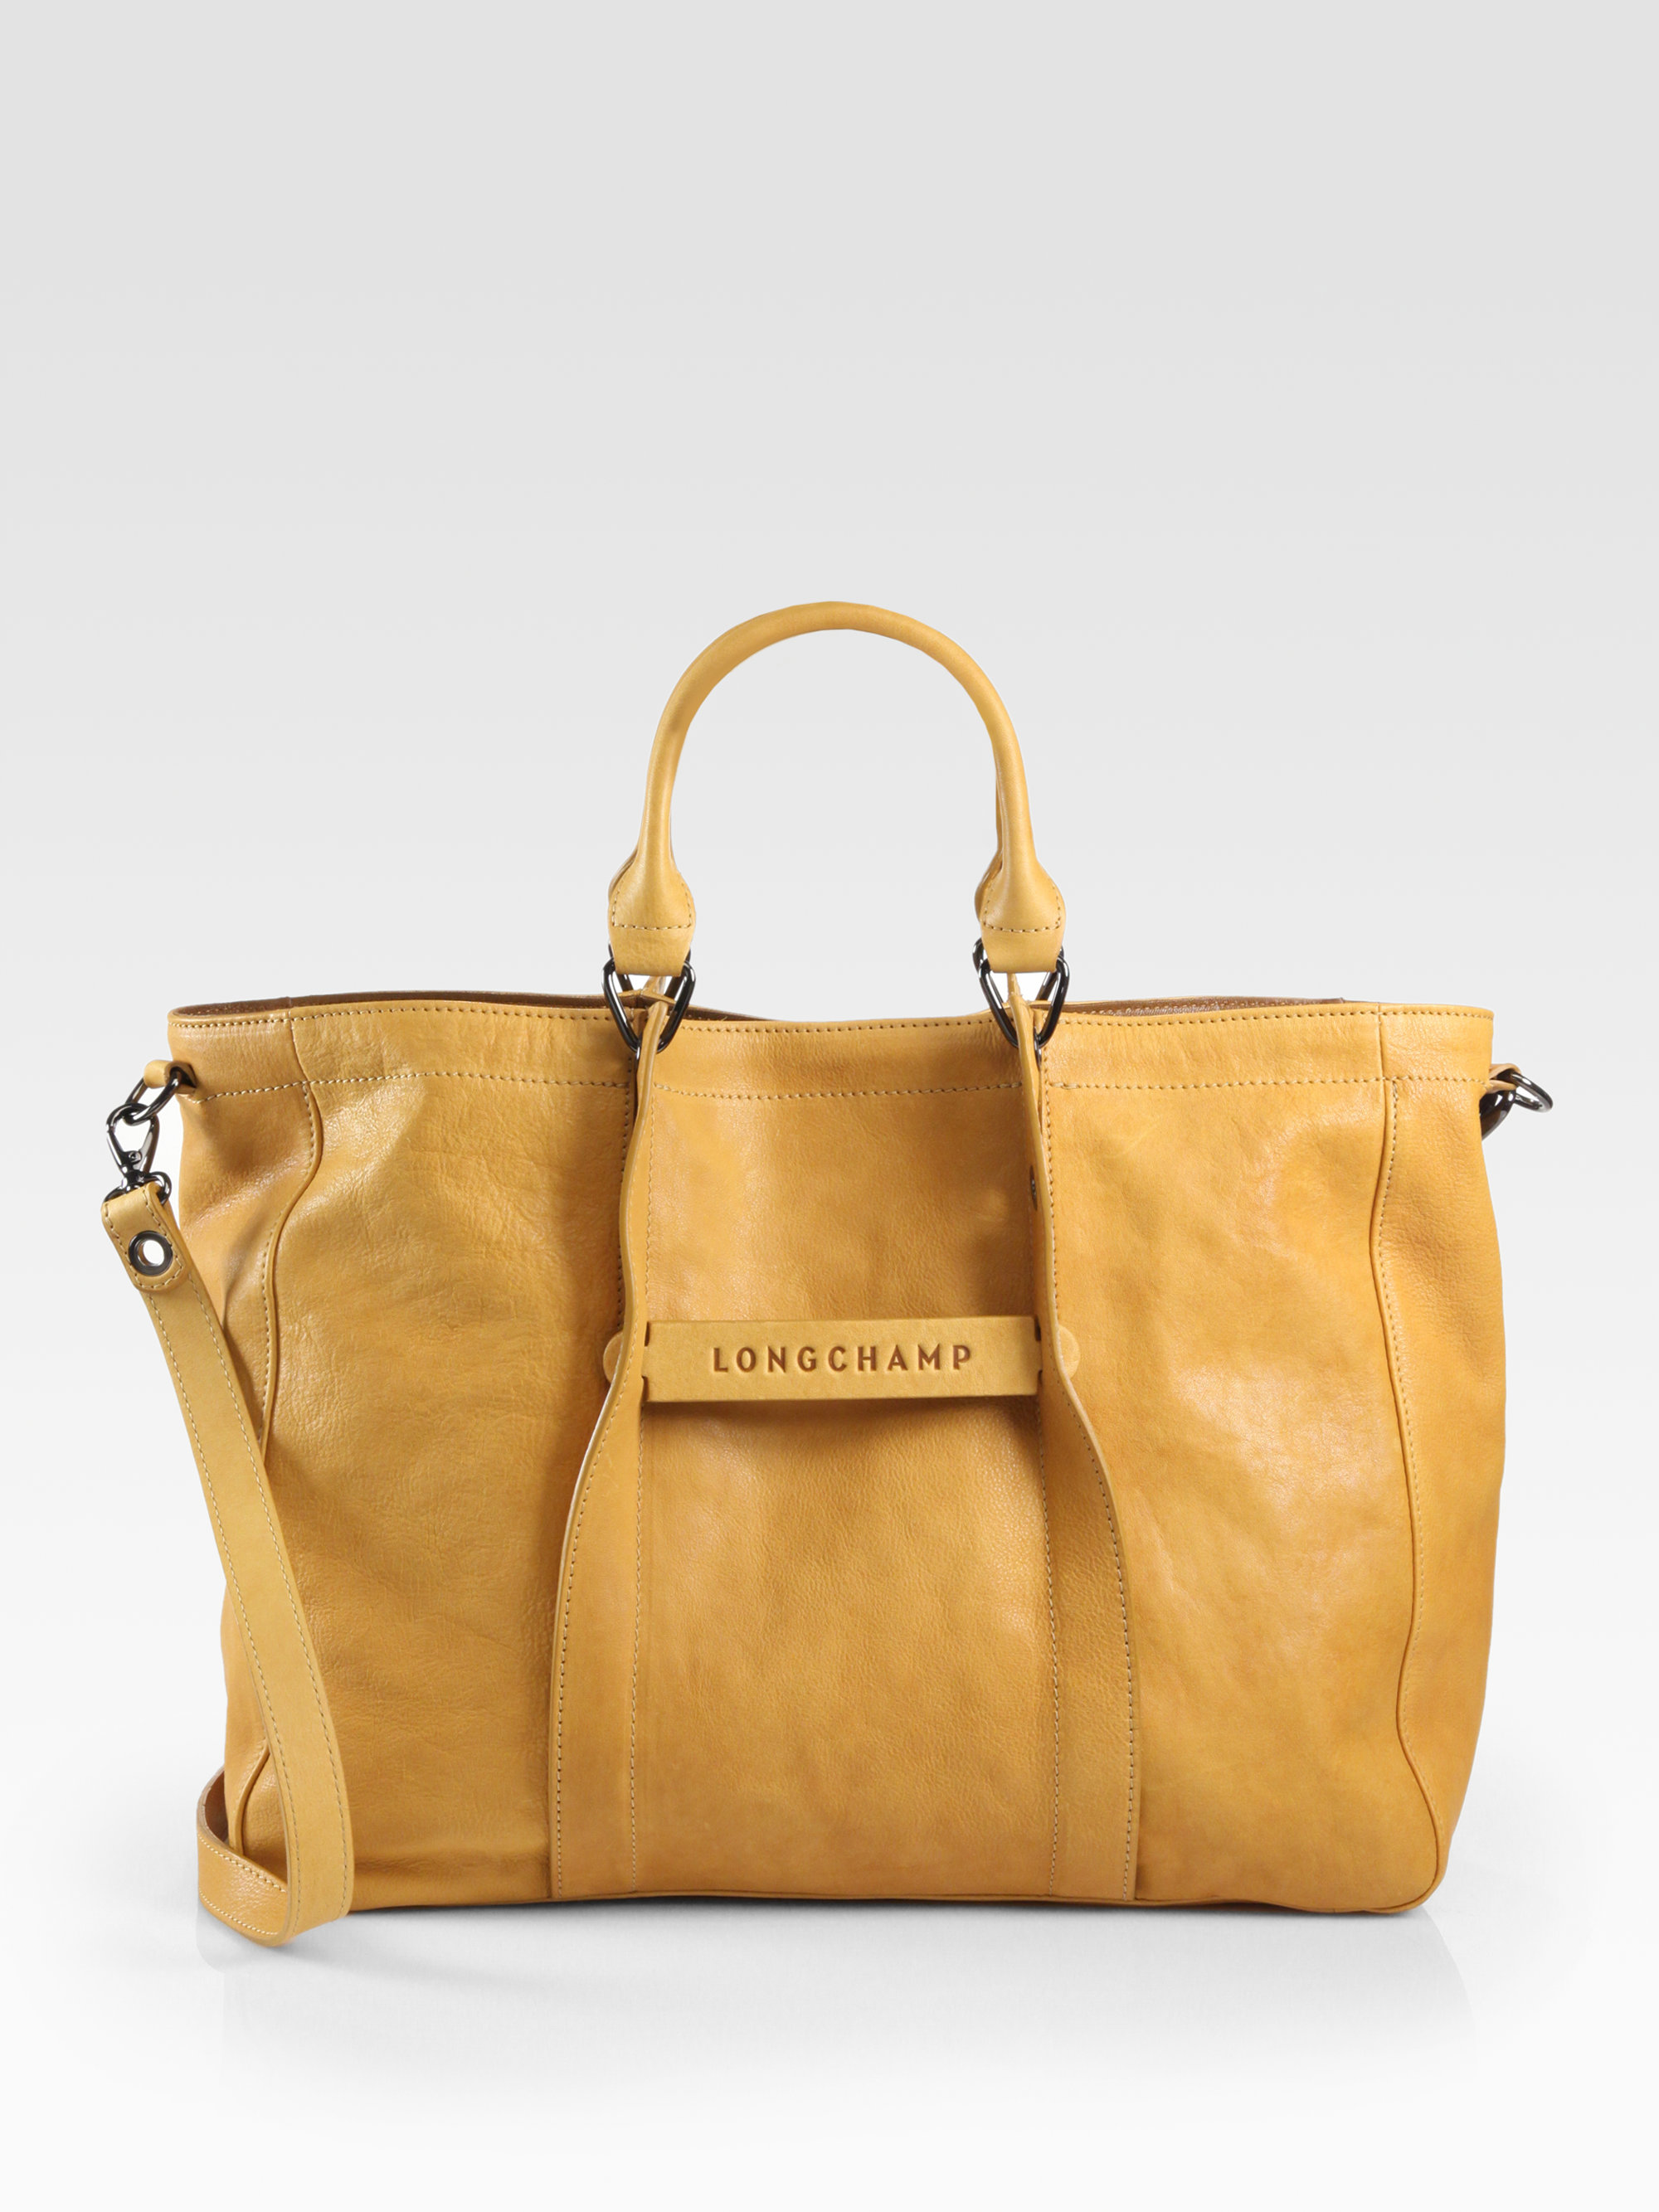 3d Large Tote